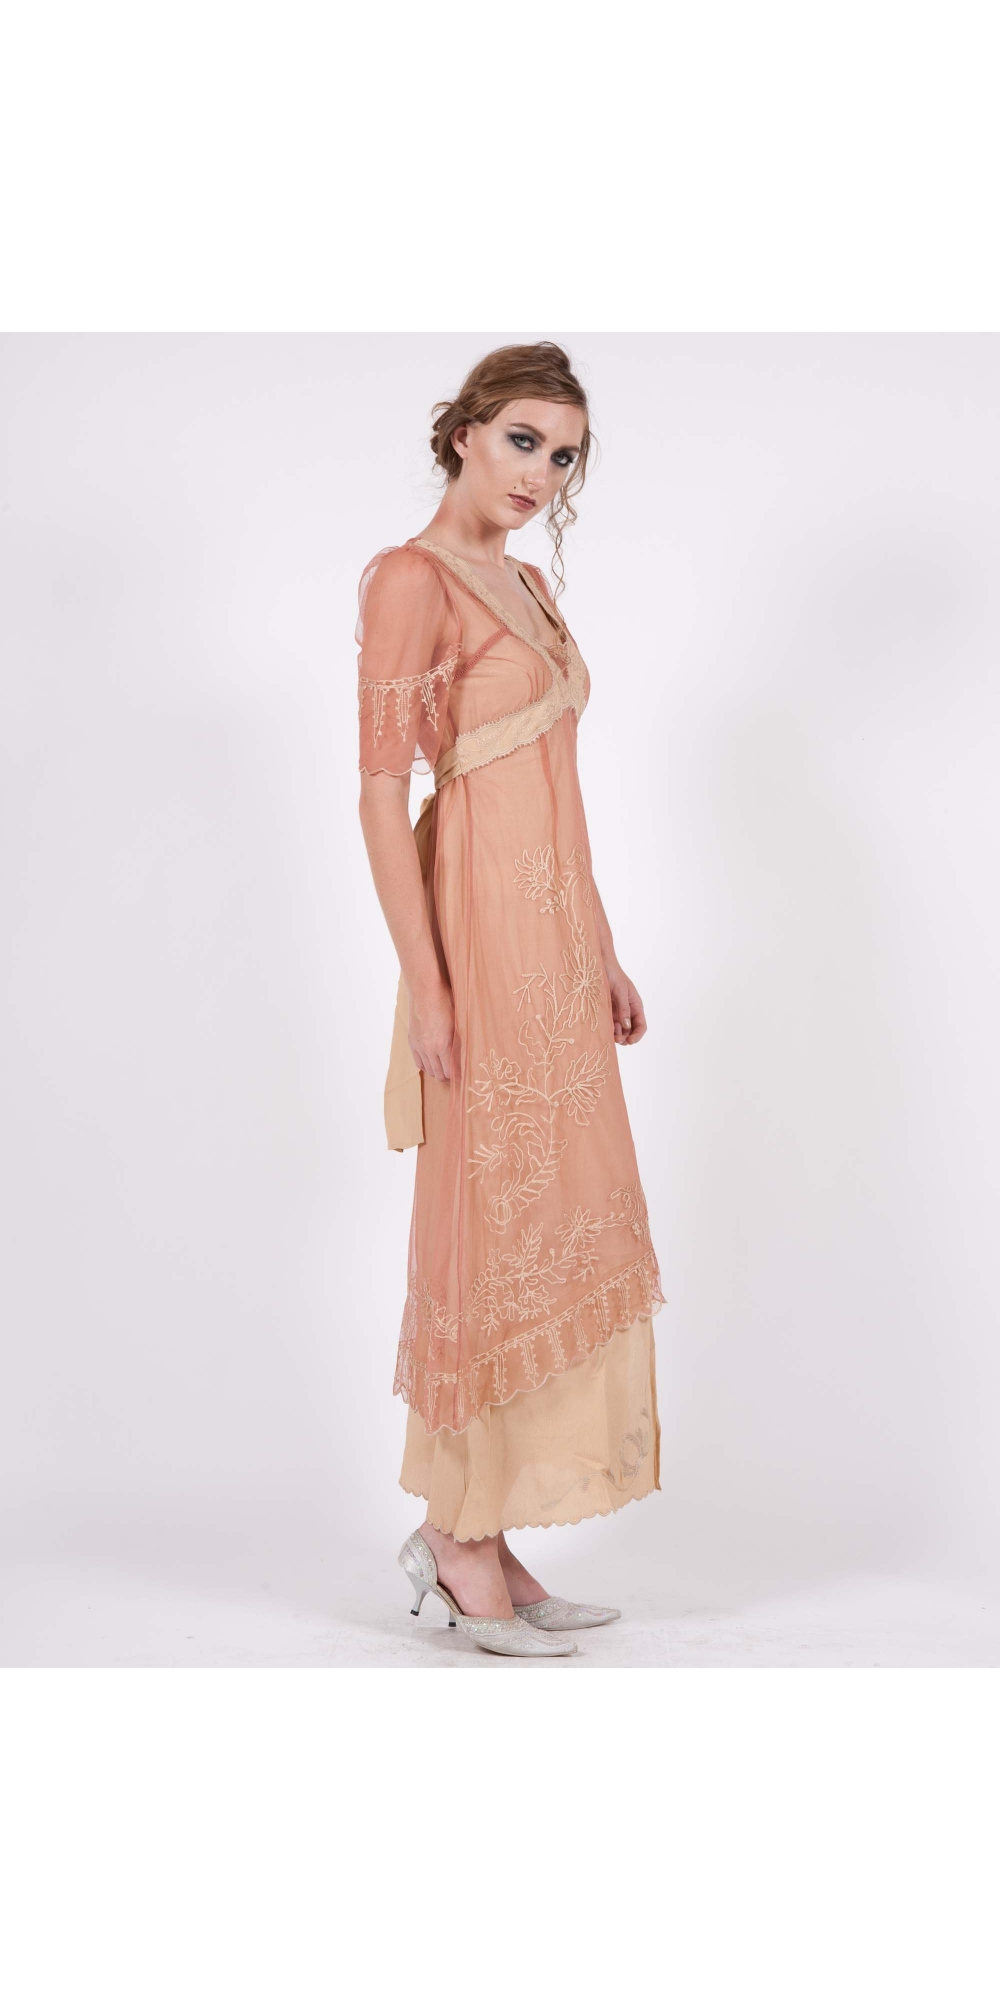 40007 New Vintage Titanic Dress In Rose Gold